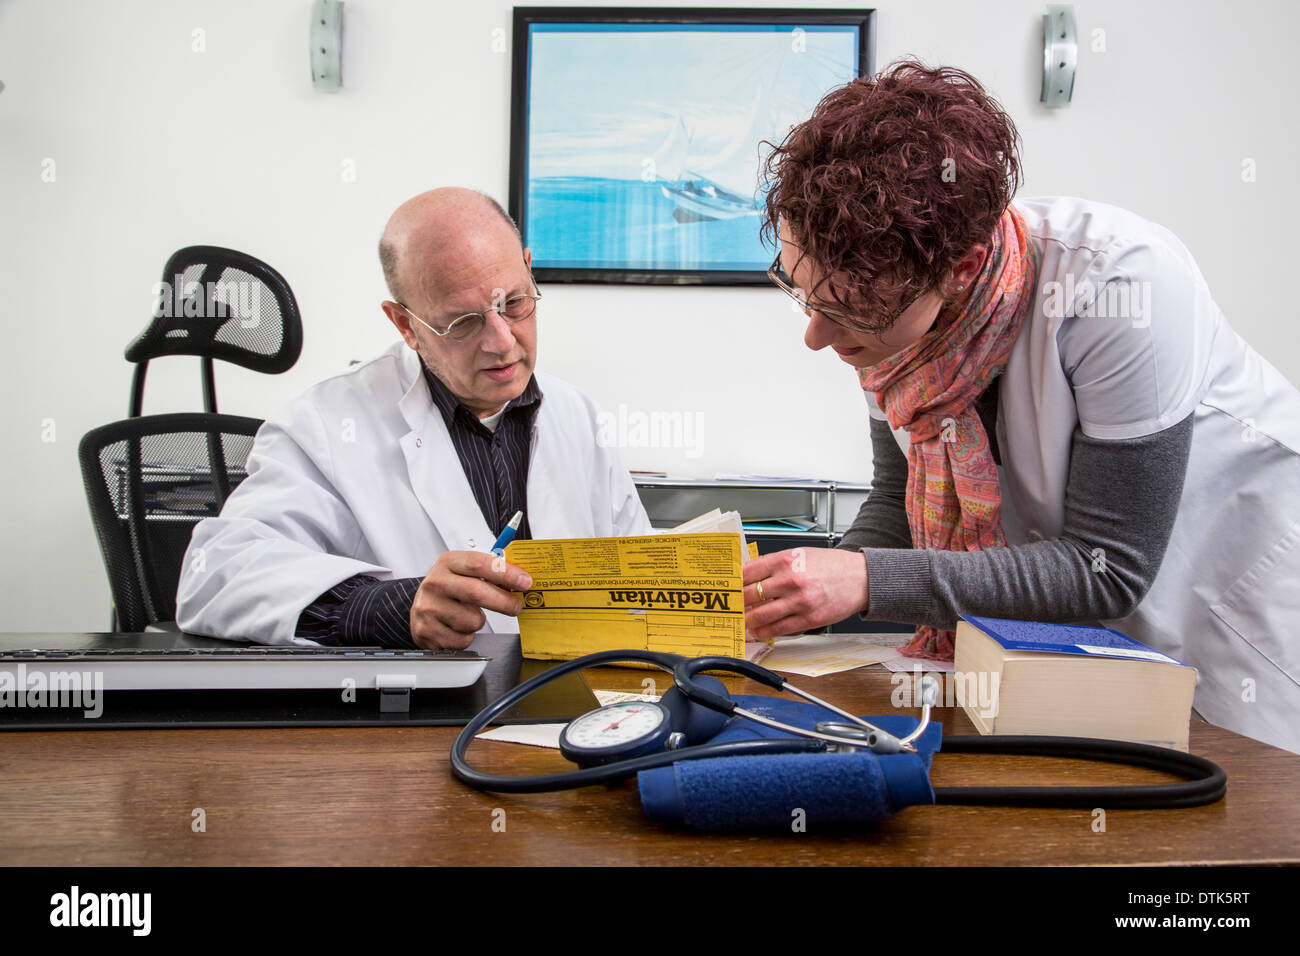 Doctors office. Doctor confers with an assistant. - Stock Image